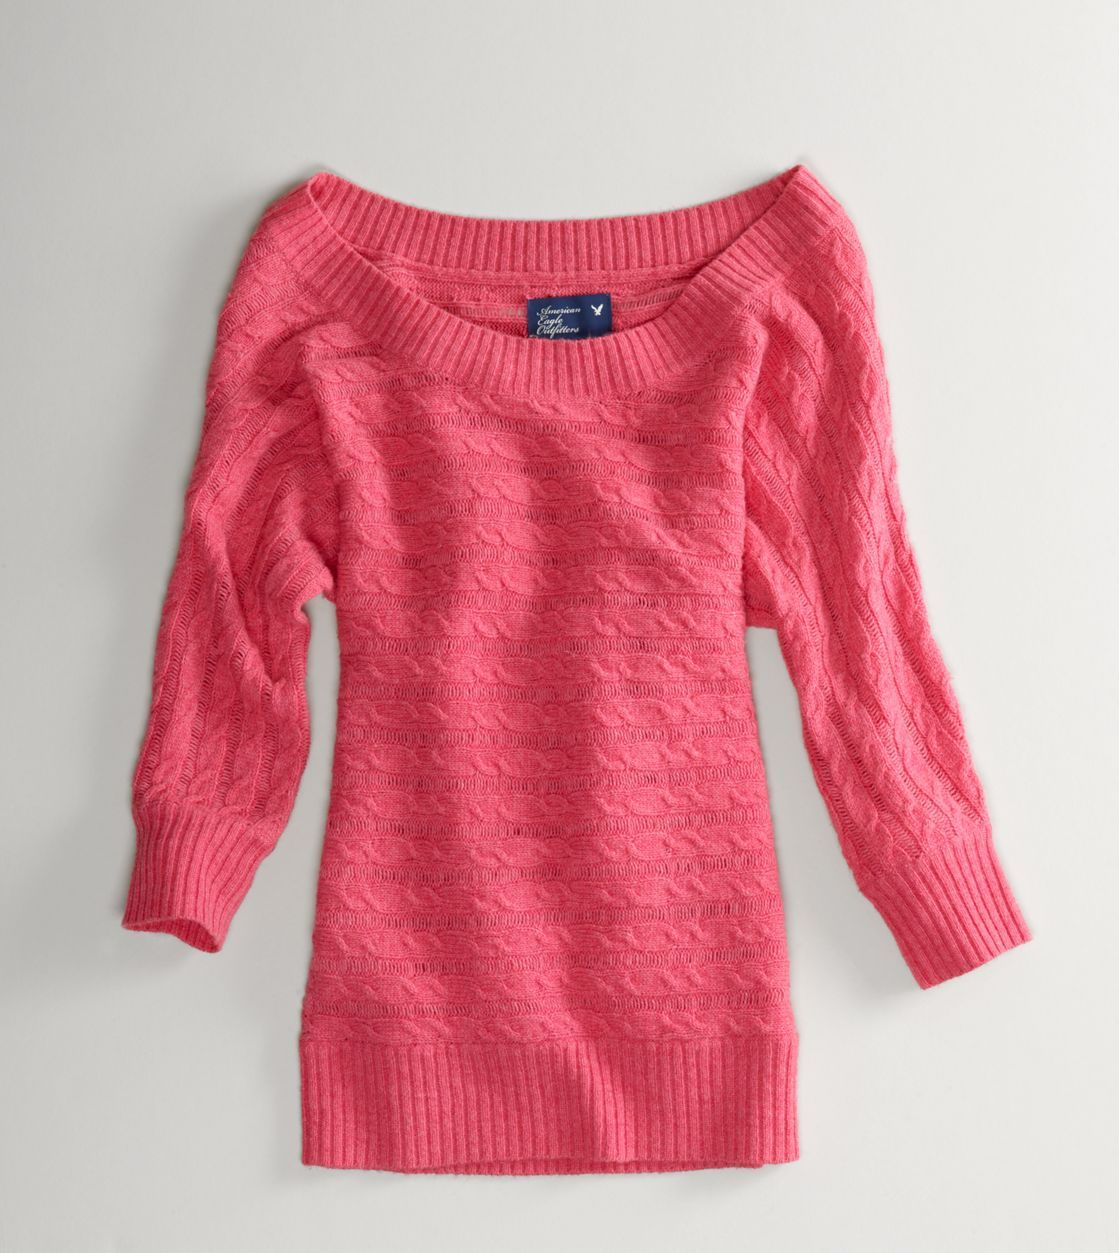 One of my most favorite sweaters that I love wearing from American Eagle  Outfitters